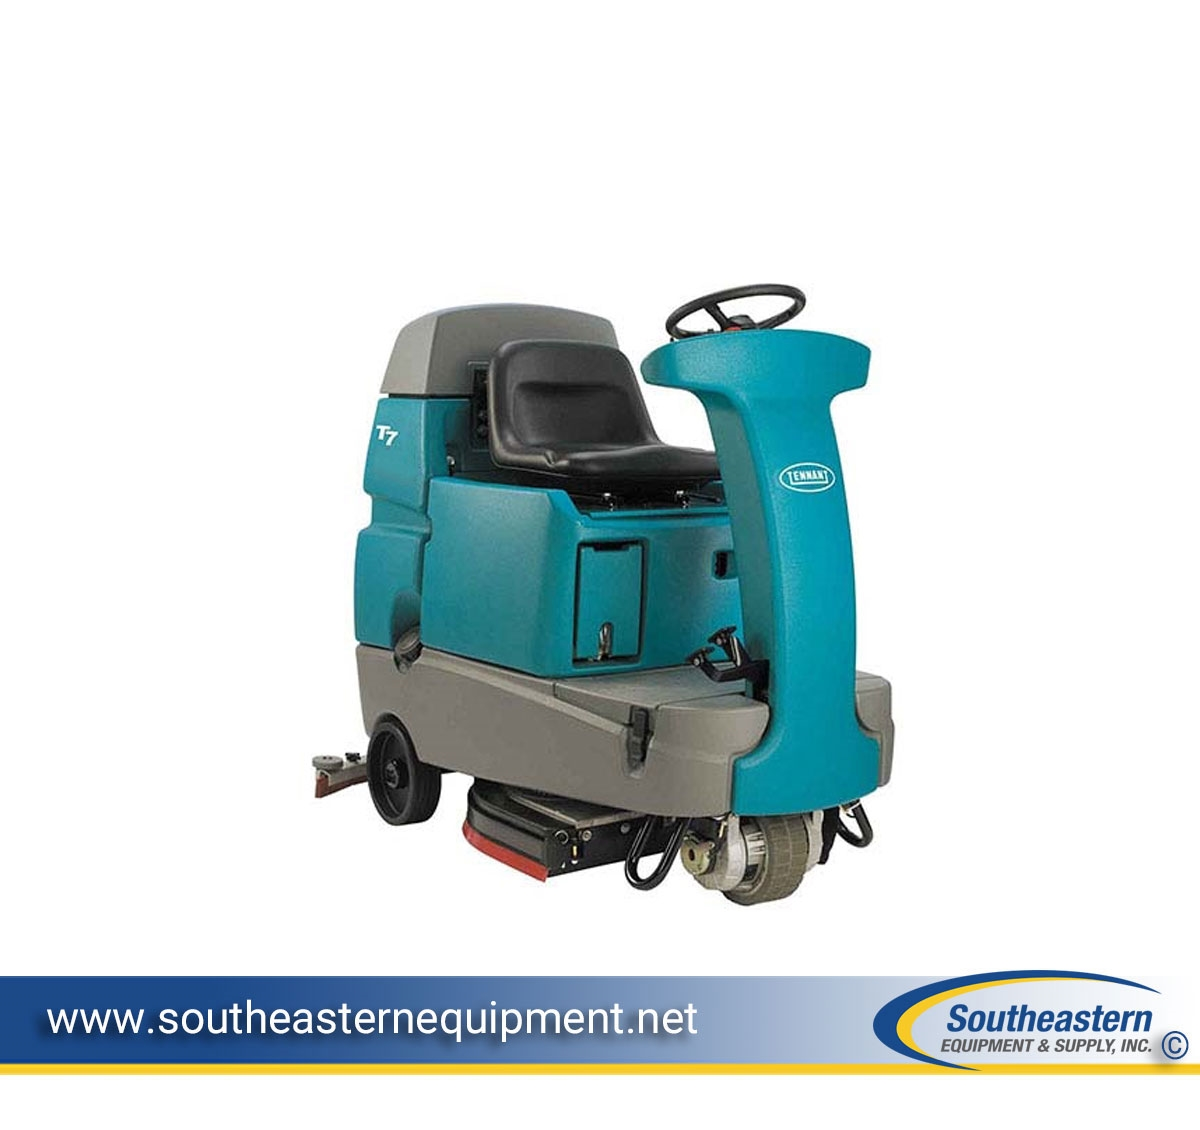 Beautiful Tennant T7 32 Inch Rider Floor Scrubber